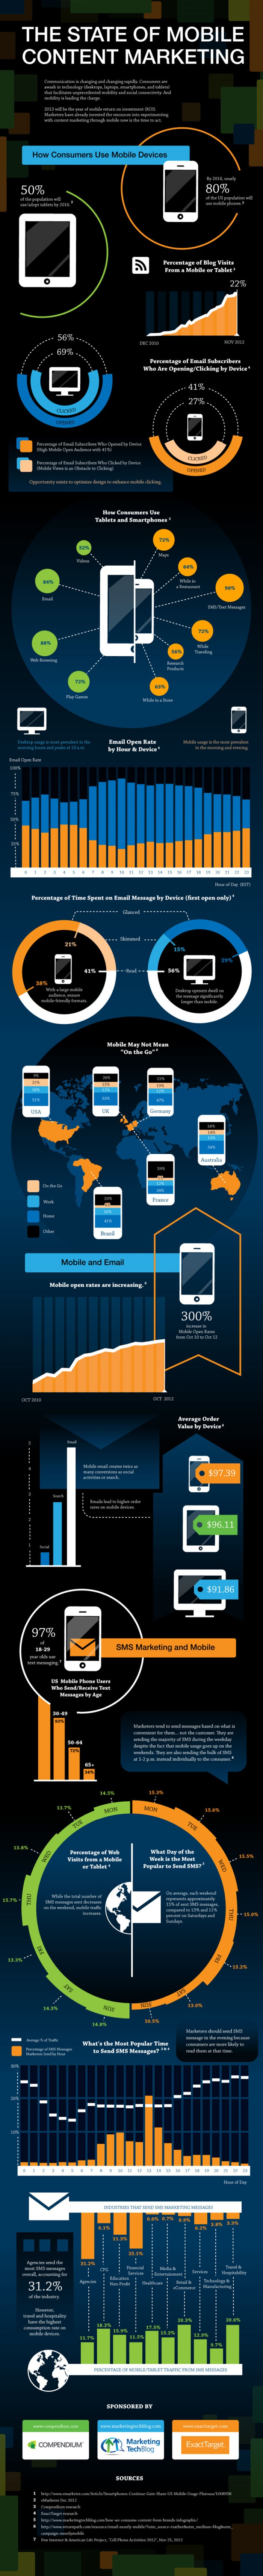 smartphone usage statistics and trends